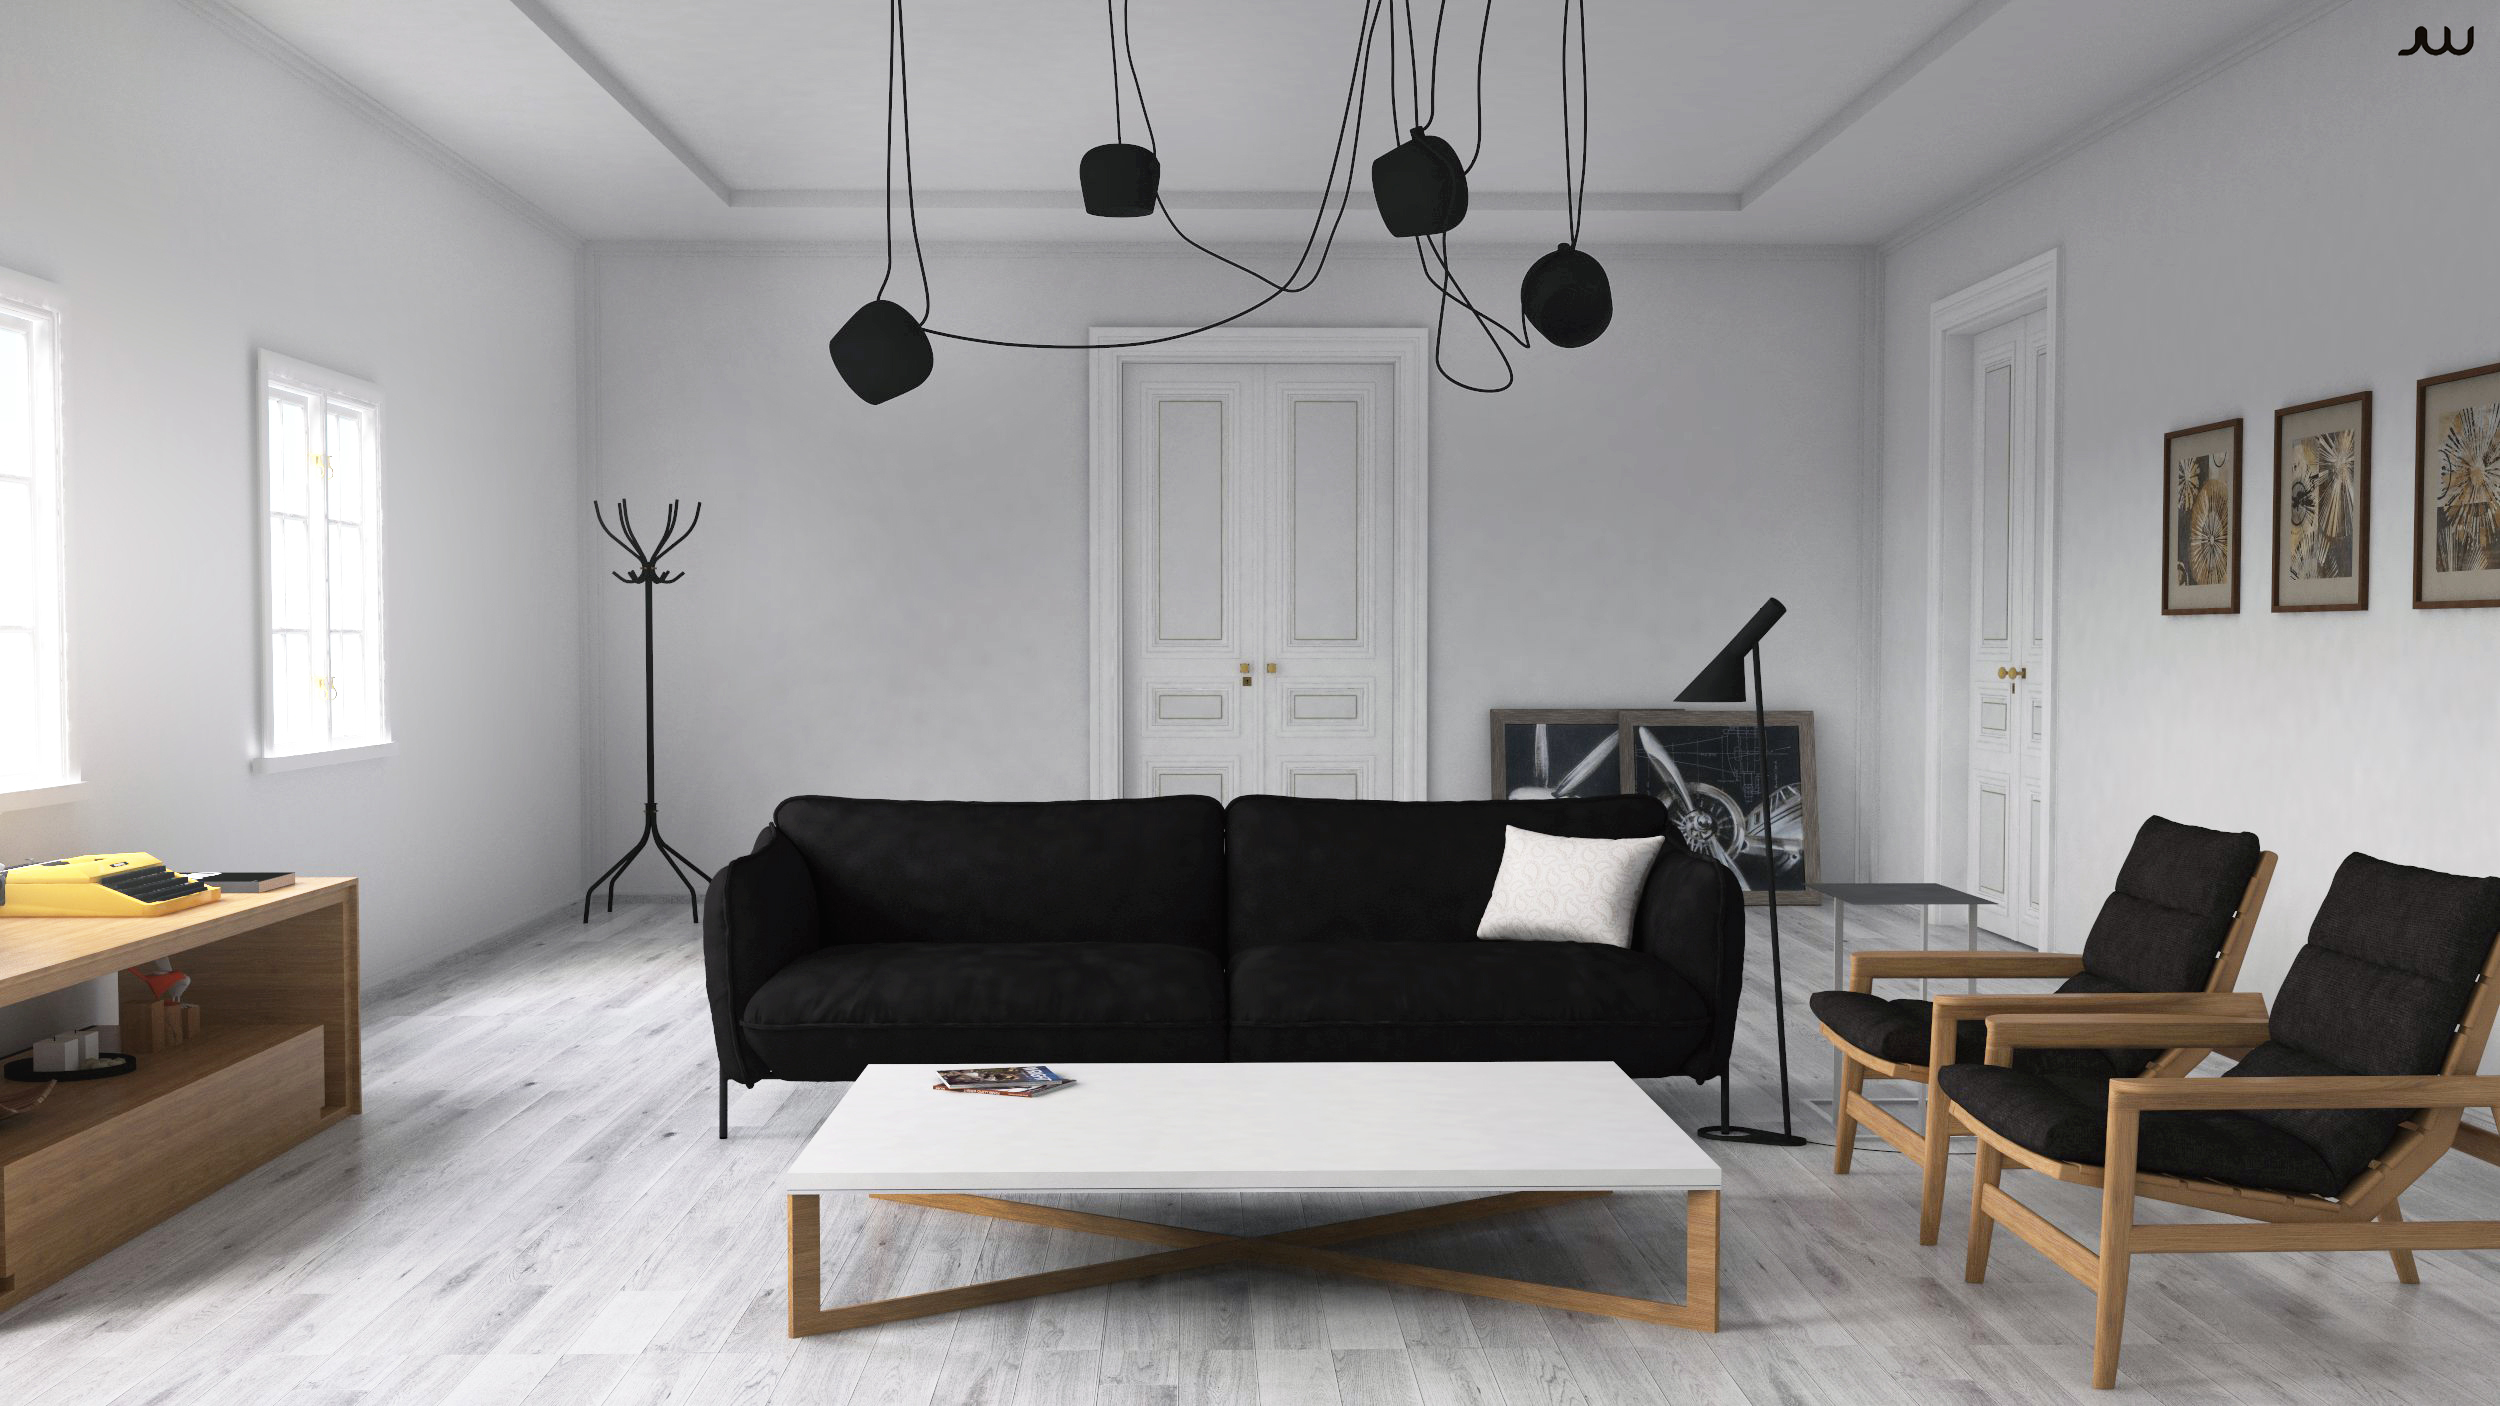 of scandinavian interior with Sketchup, Vray and Photoshop